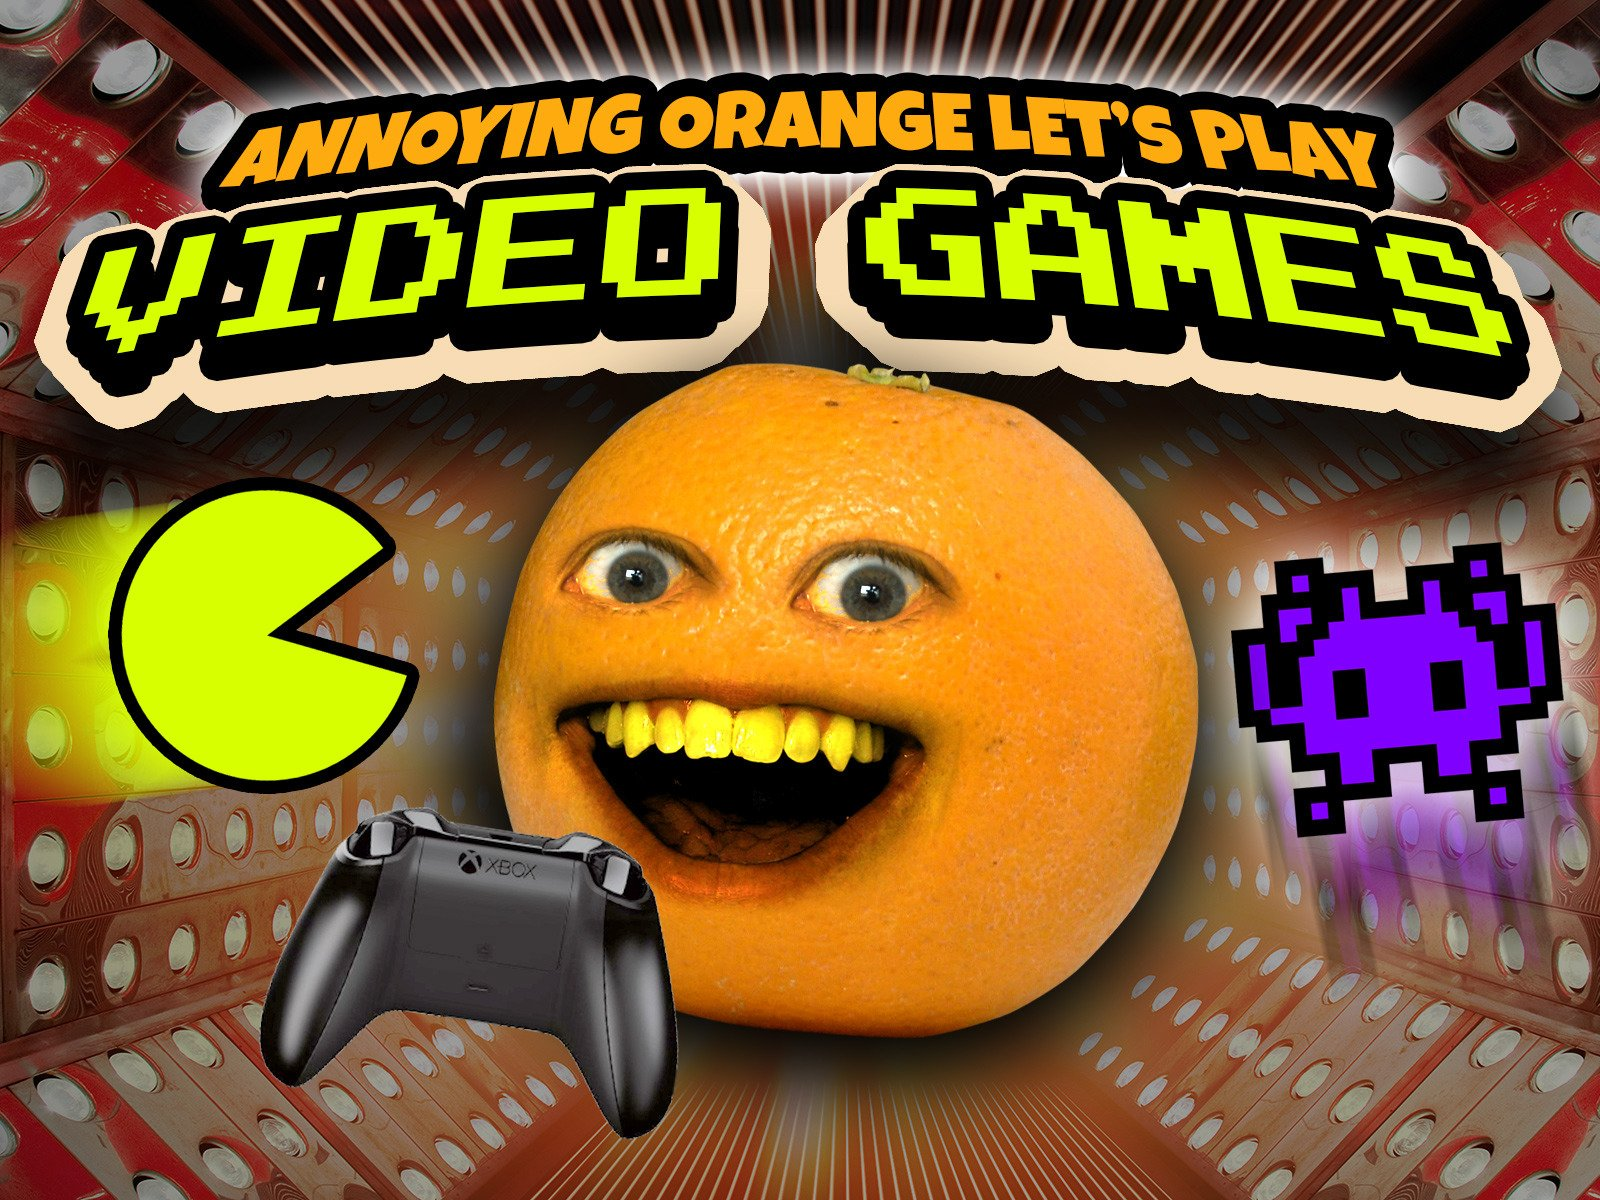 Amazon.com: Watch Clip: Annoying Orange Lets Play Video Games! | Prime Video